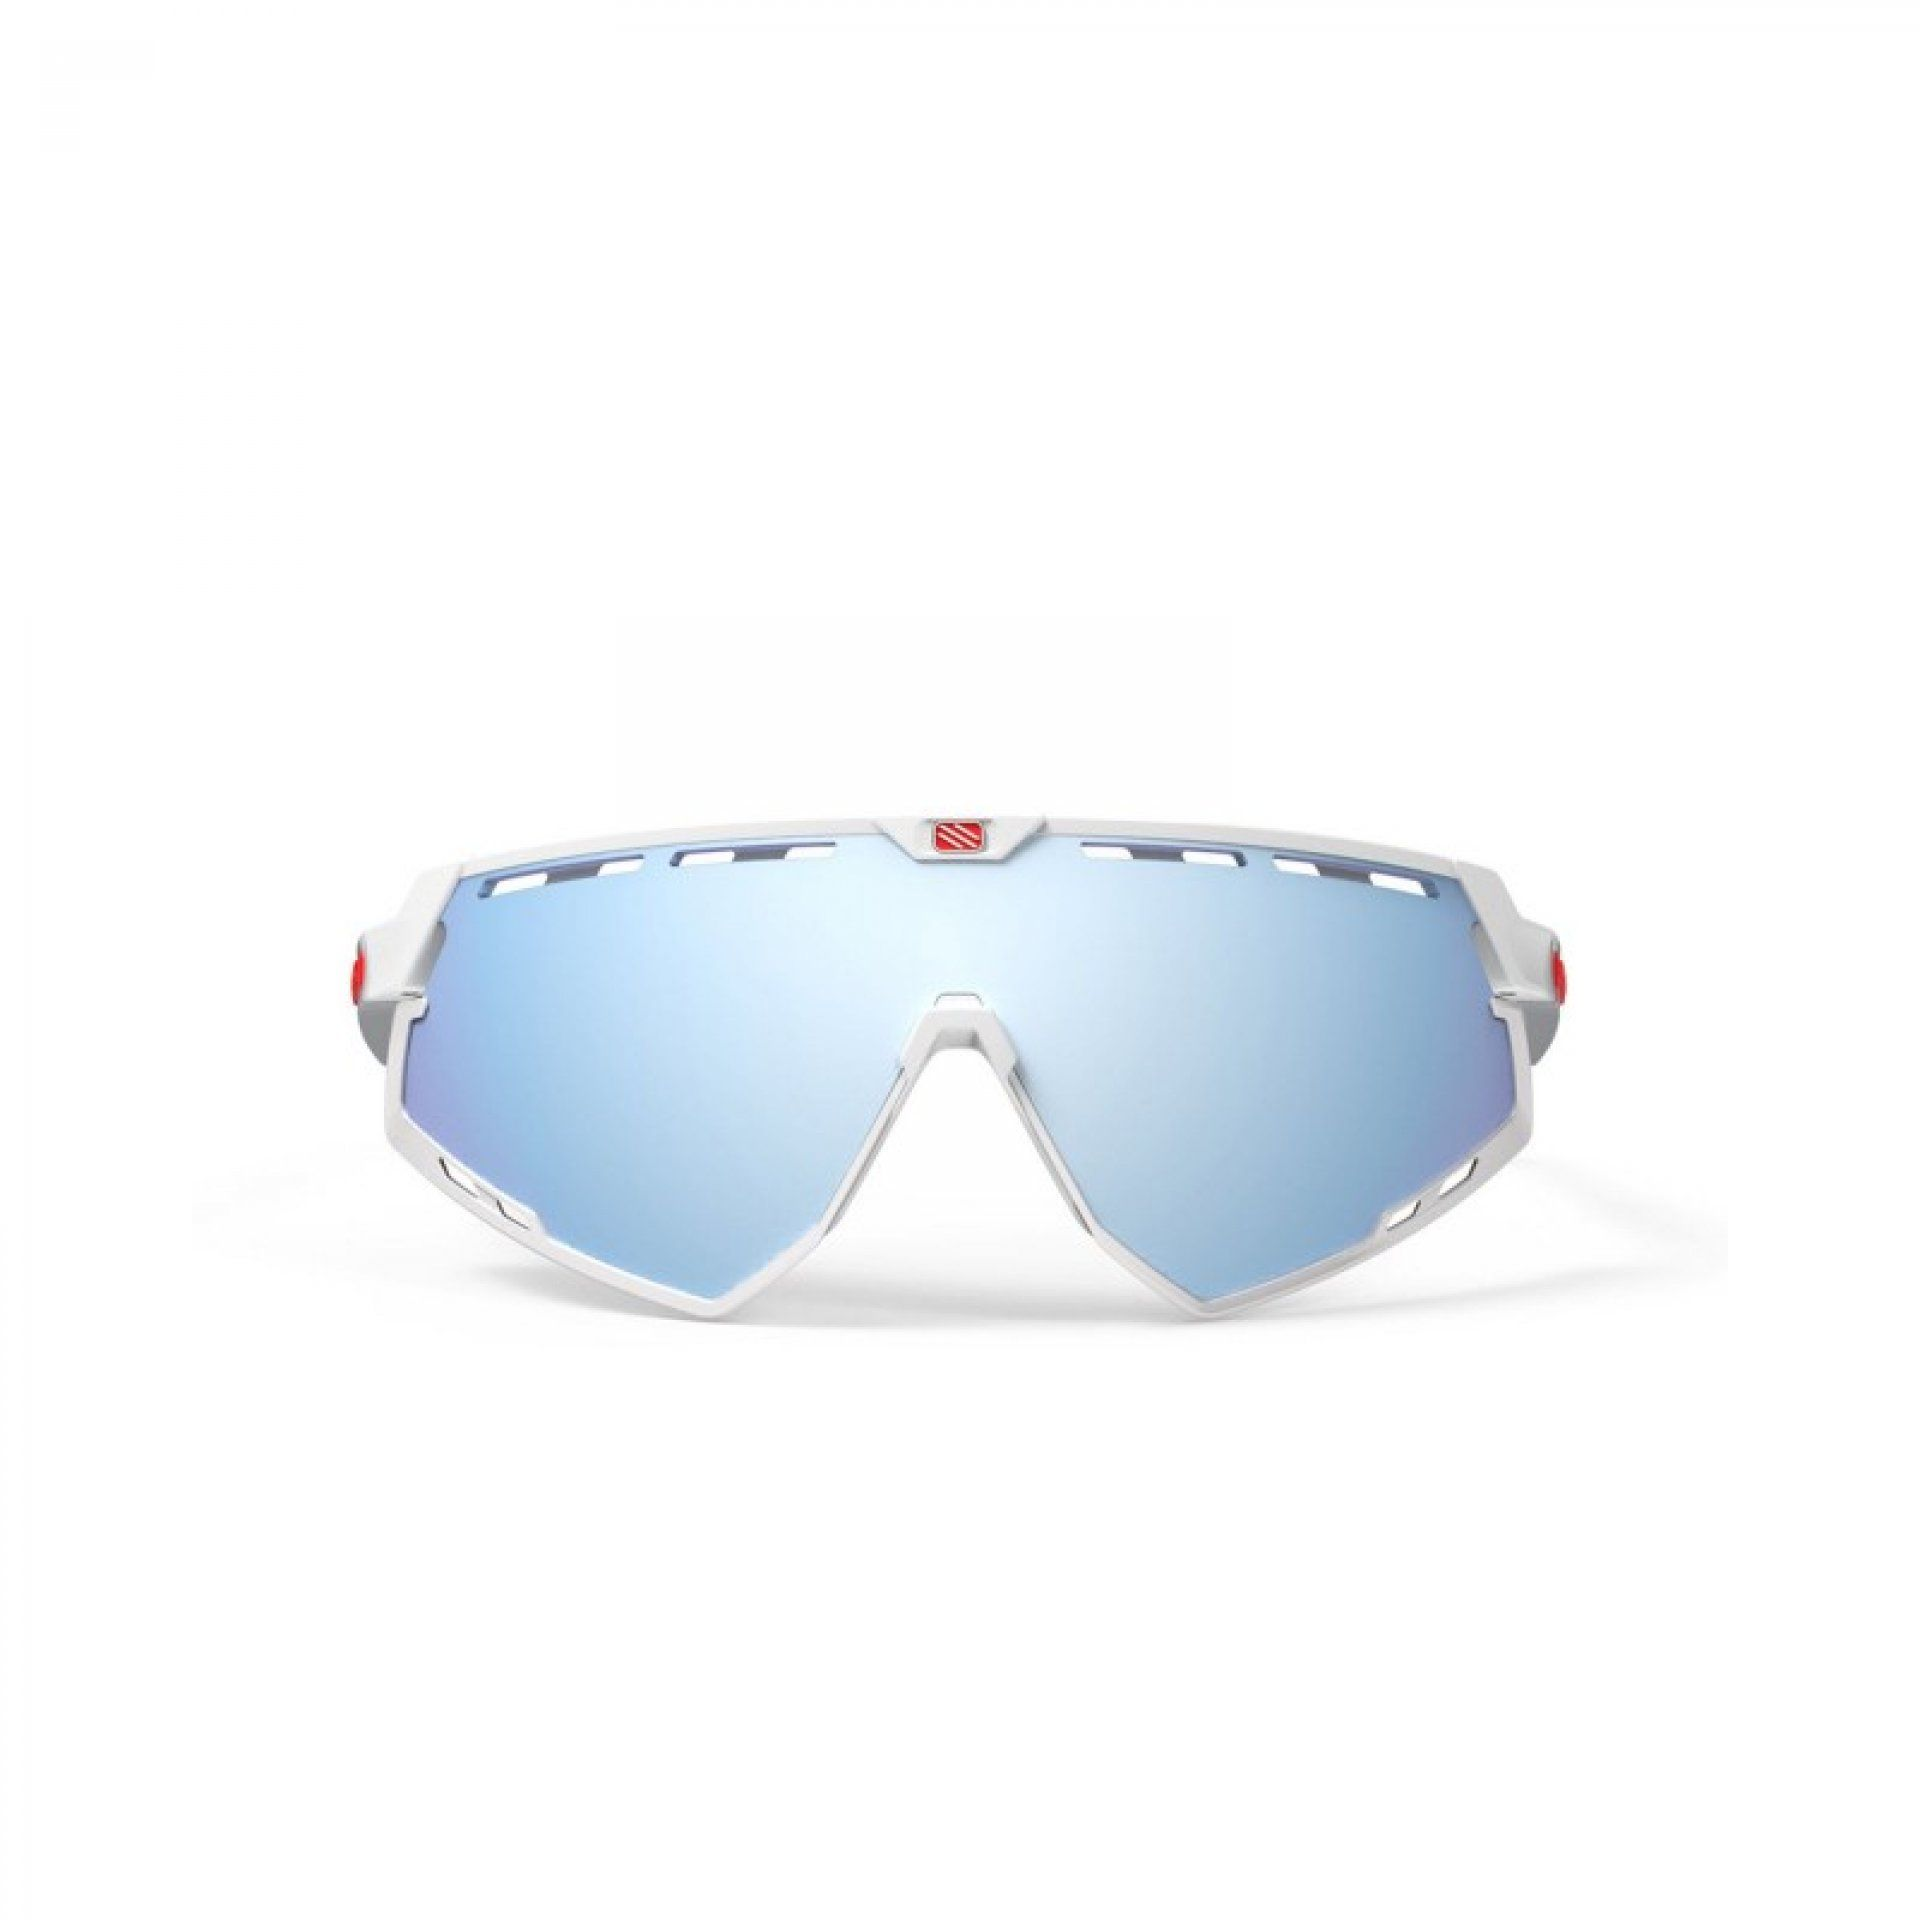 OKULARY RUDY PROJECT DEFENDER WHITE GLOSSY + MULTILASER ICE 2